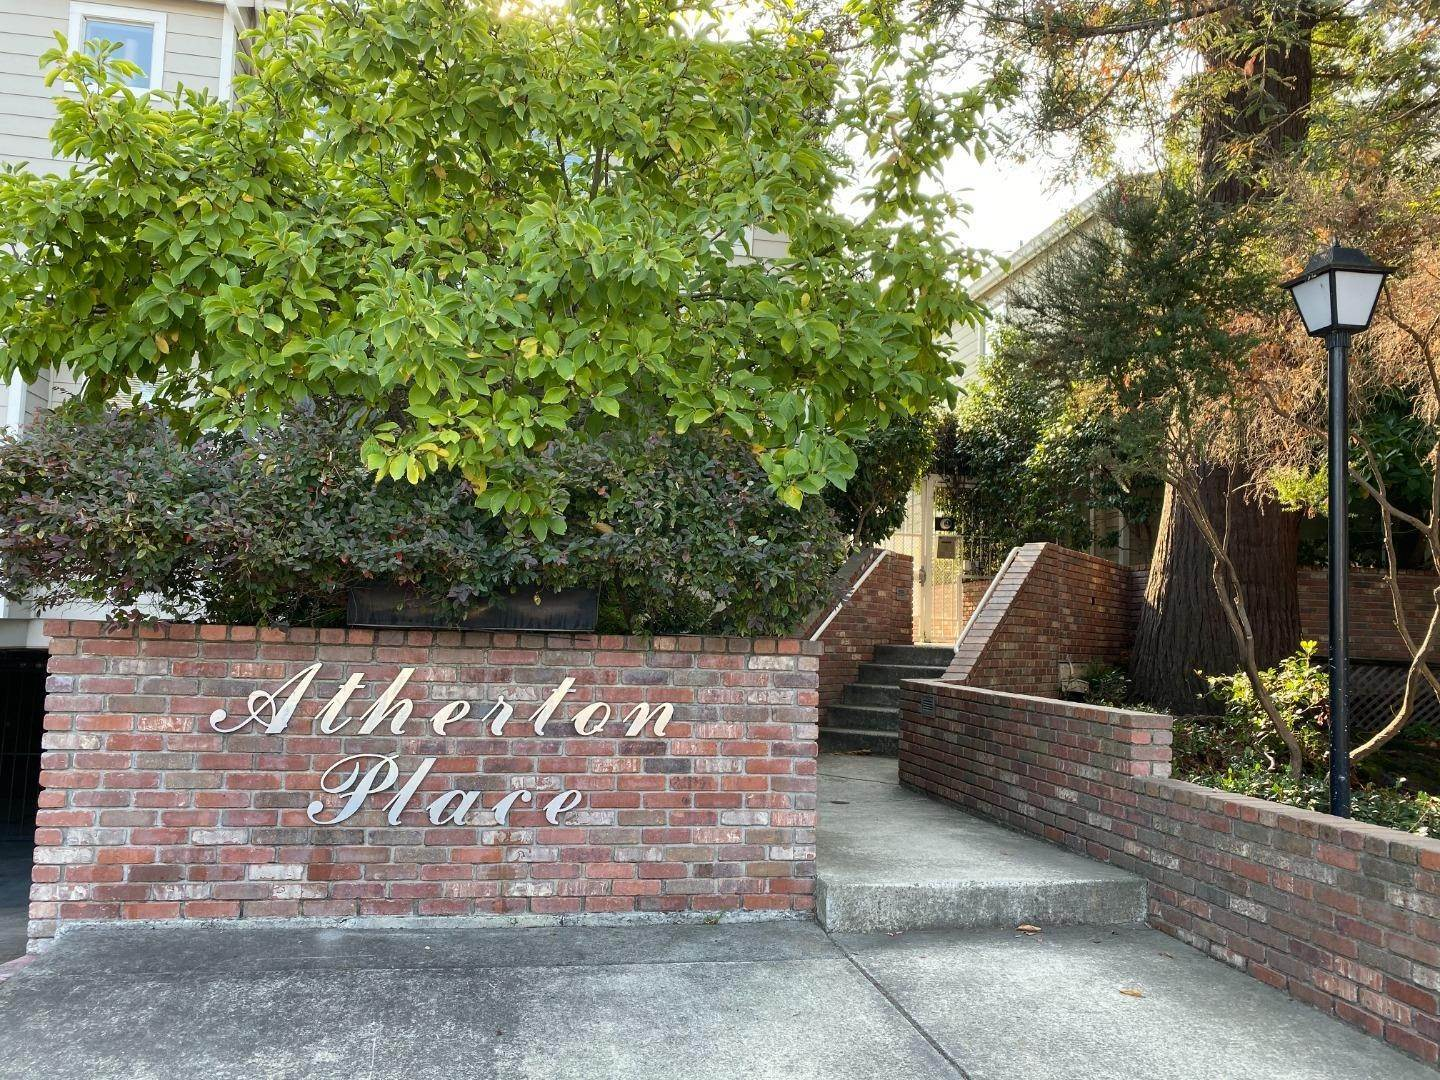 townhouses en 3421 El Camino Real Atherton, California 94027 Estados Unidos